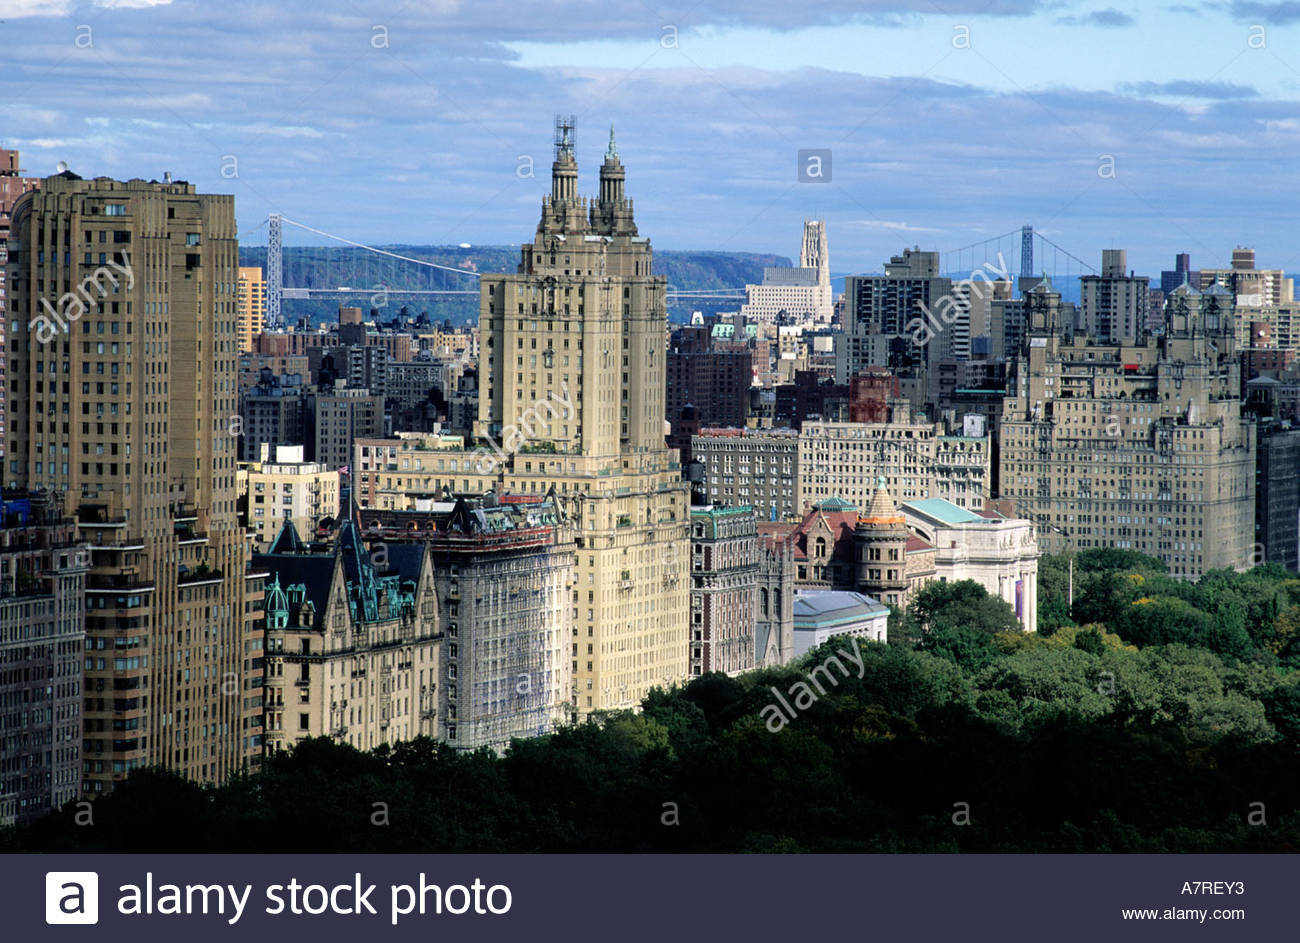 Central Park Manhattan New York City Pictures to pin on Pinterest